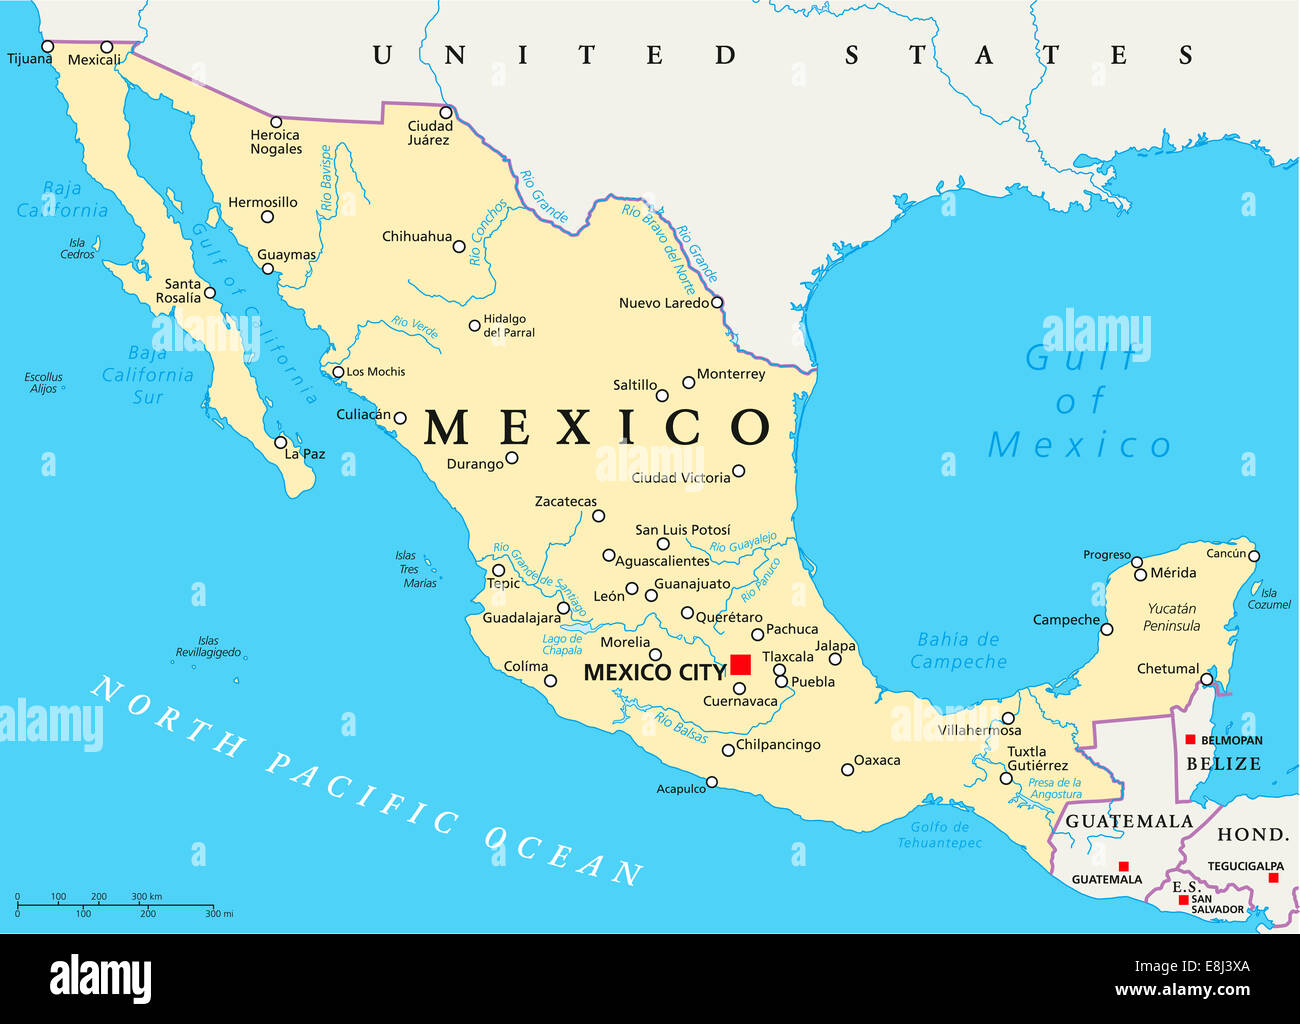 Mexico Political Map with capital Mexico City, national borders